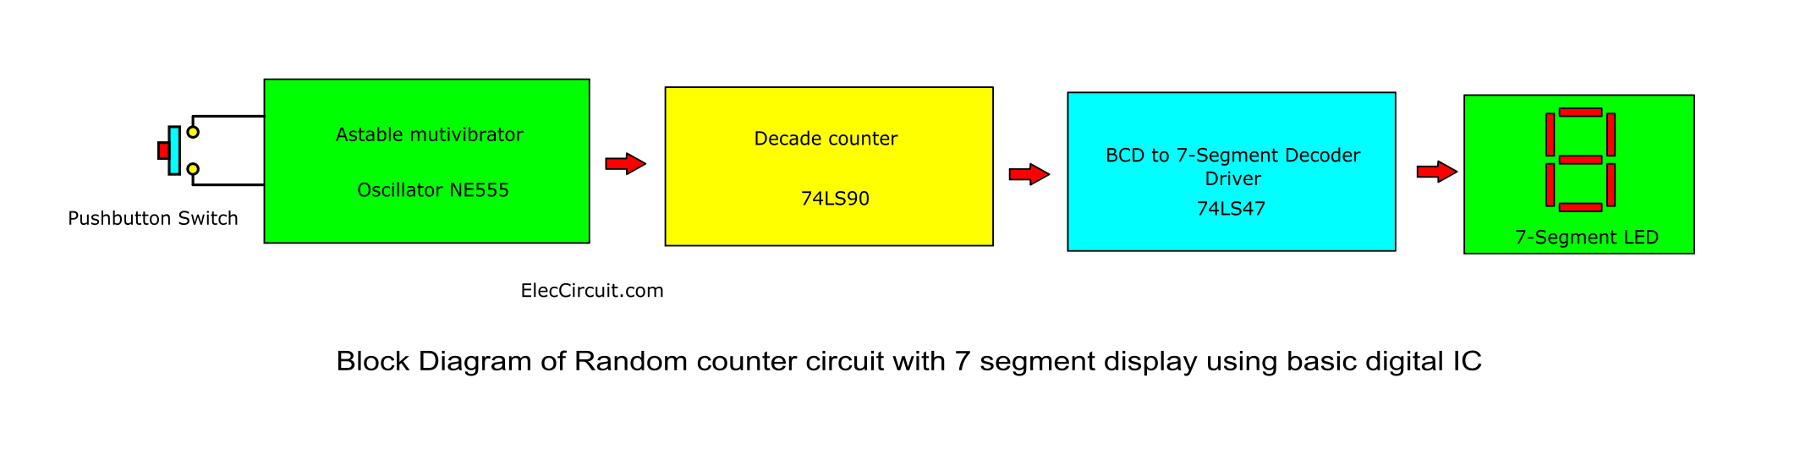 Random Counter Circuit With 7 Segment Display Using Basic